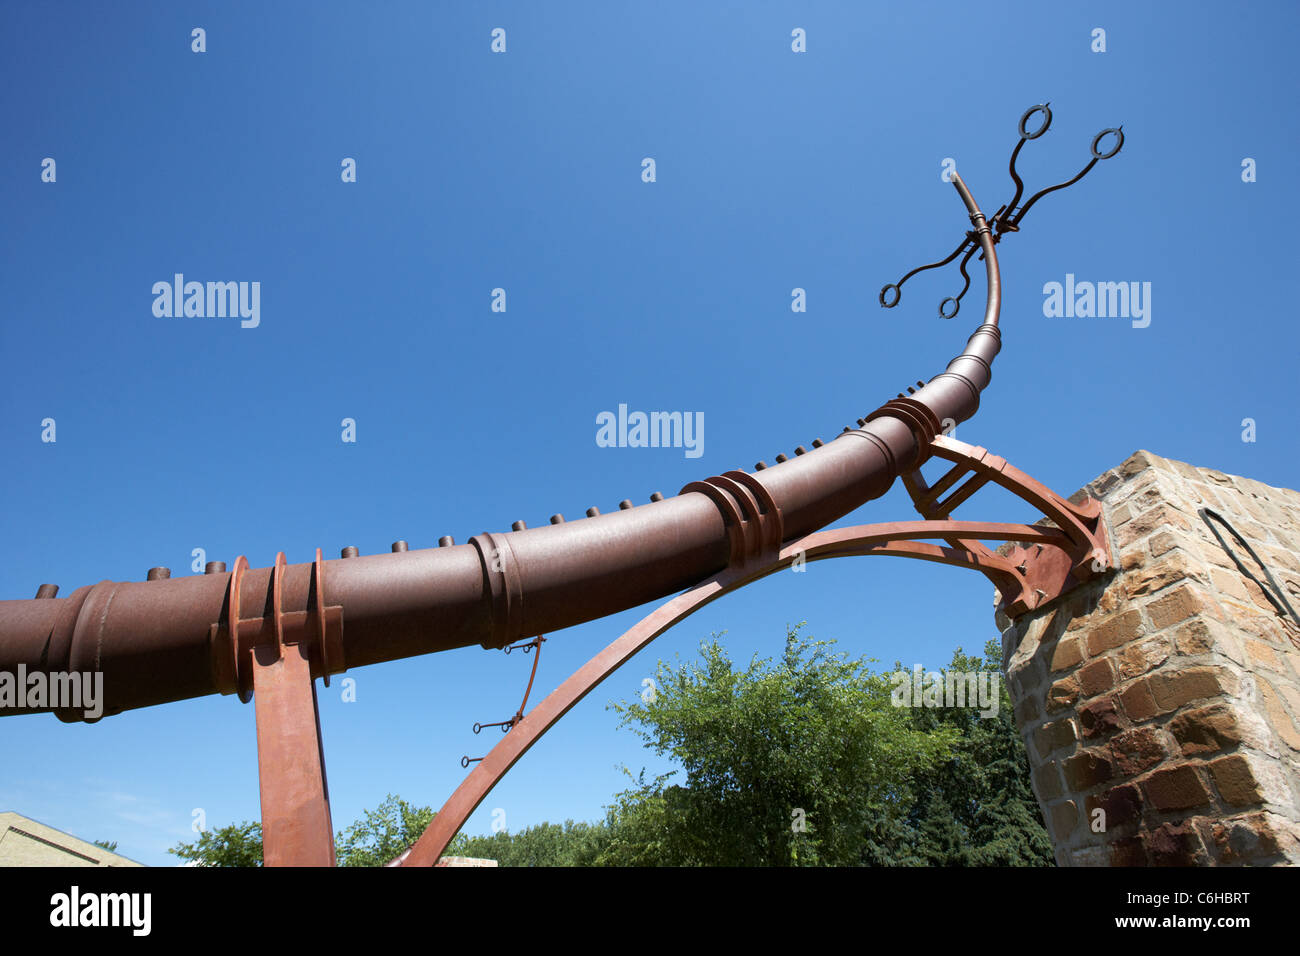 armature with star alignment sights at the oodena in the forks Winnipeg Manitoba Canada - Stock Image